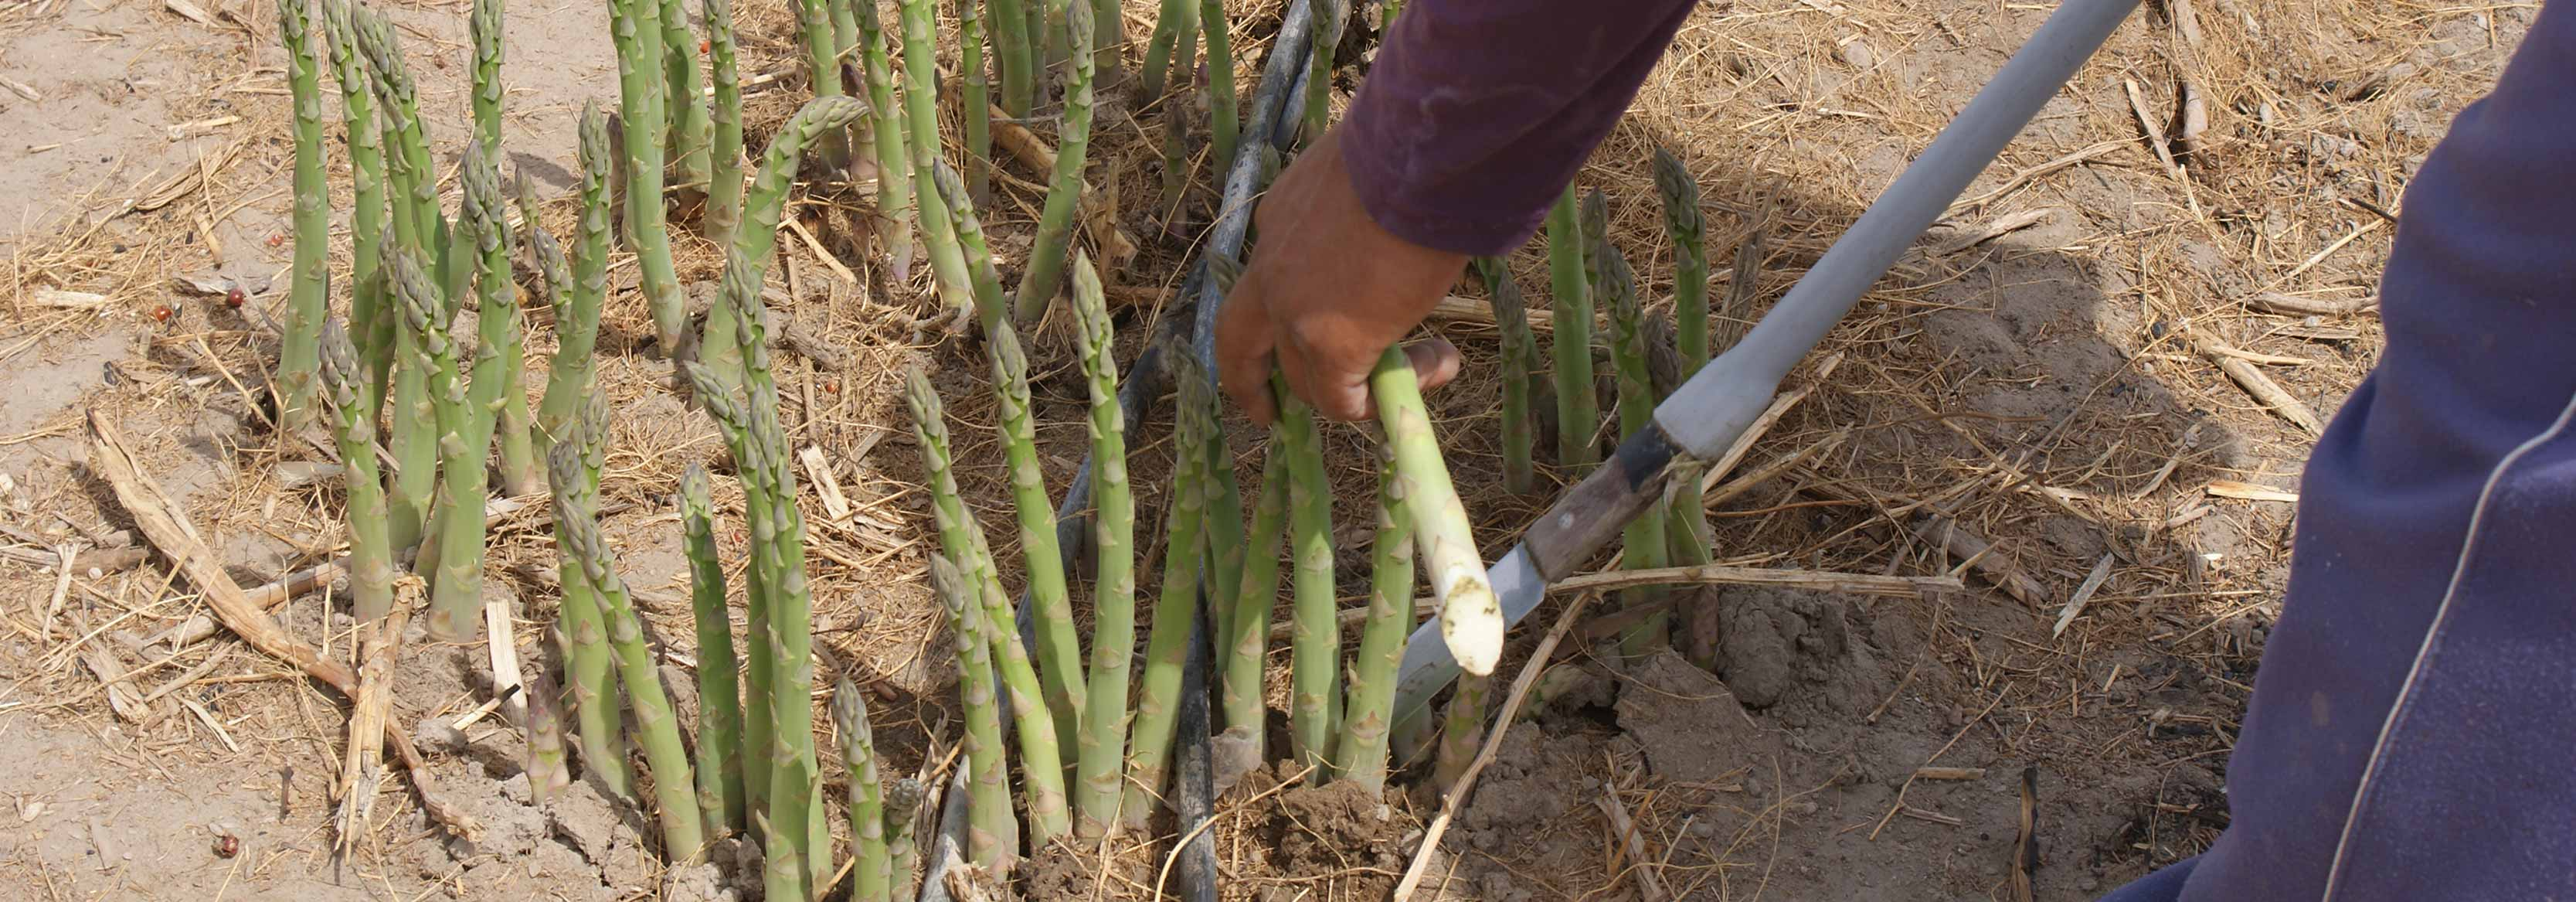 Photograph of Asparagus being harvested on the Barfoots Nazca farm in Peru